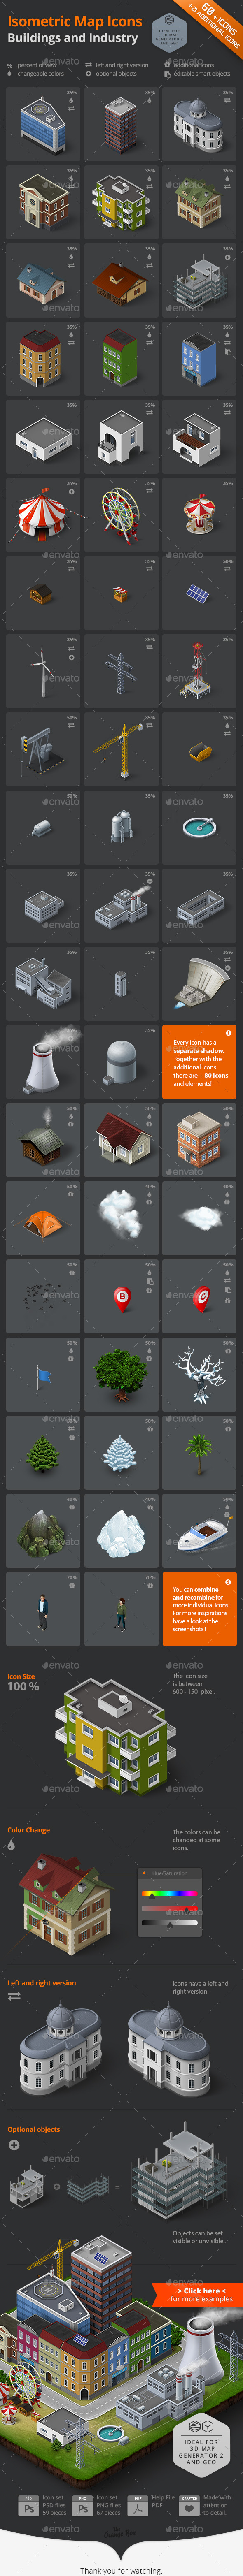 Isometric Map Icons - Buildings and Industry - Objects Icons